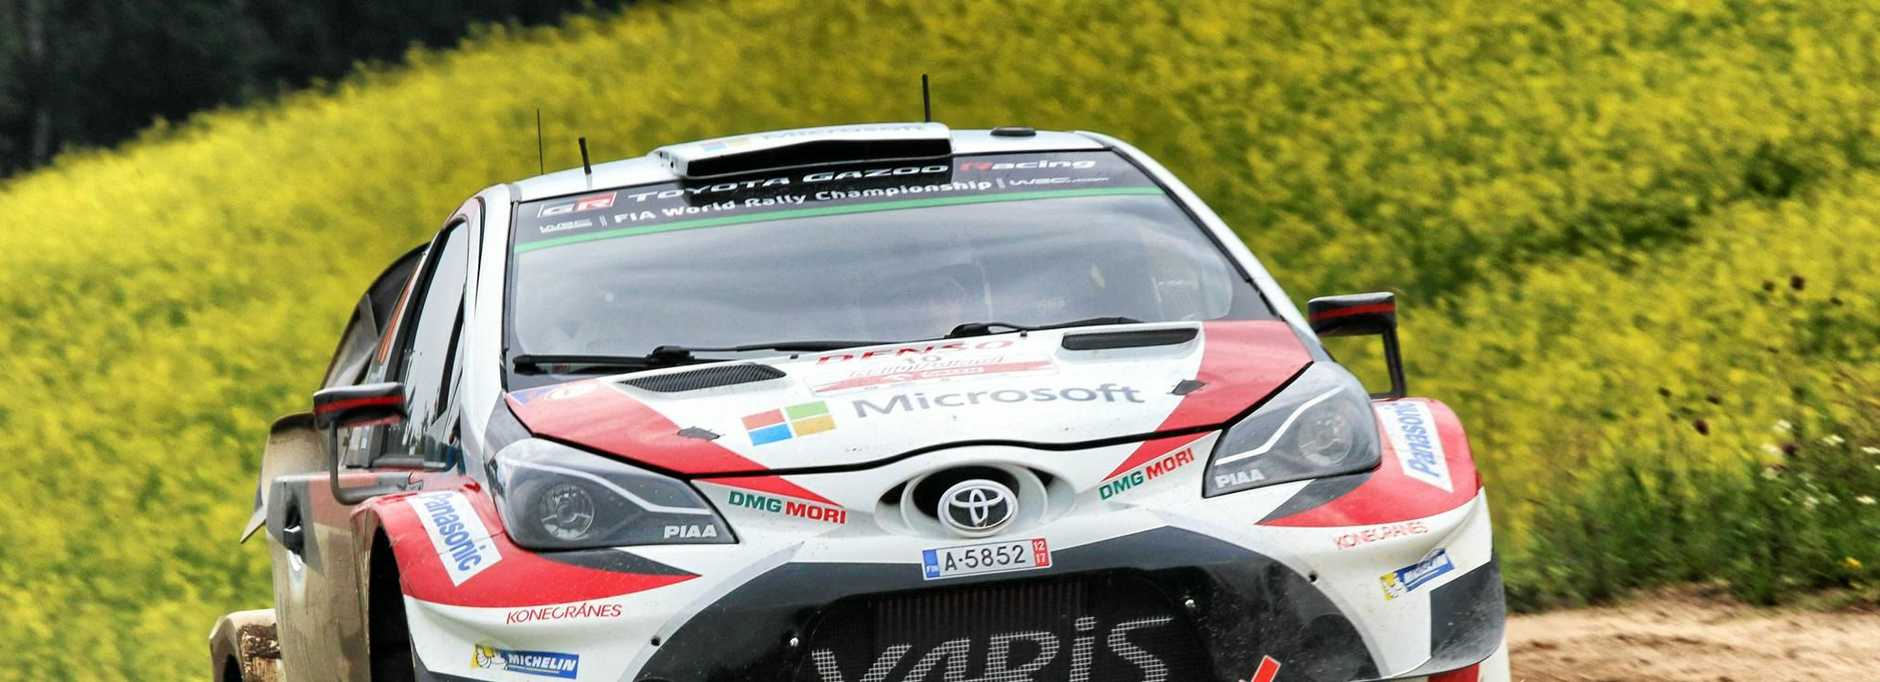 The Toyota Yaris FIA World Rally Championship car in action at WRC Poland.